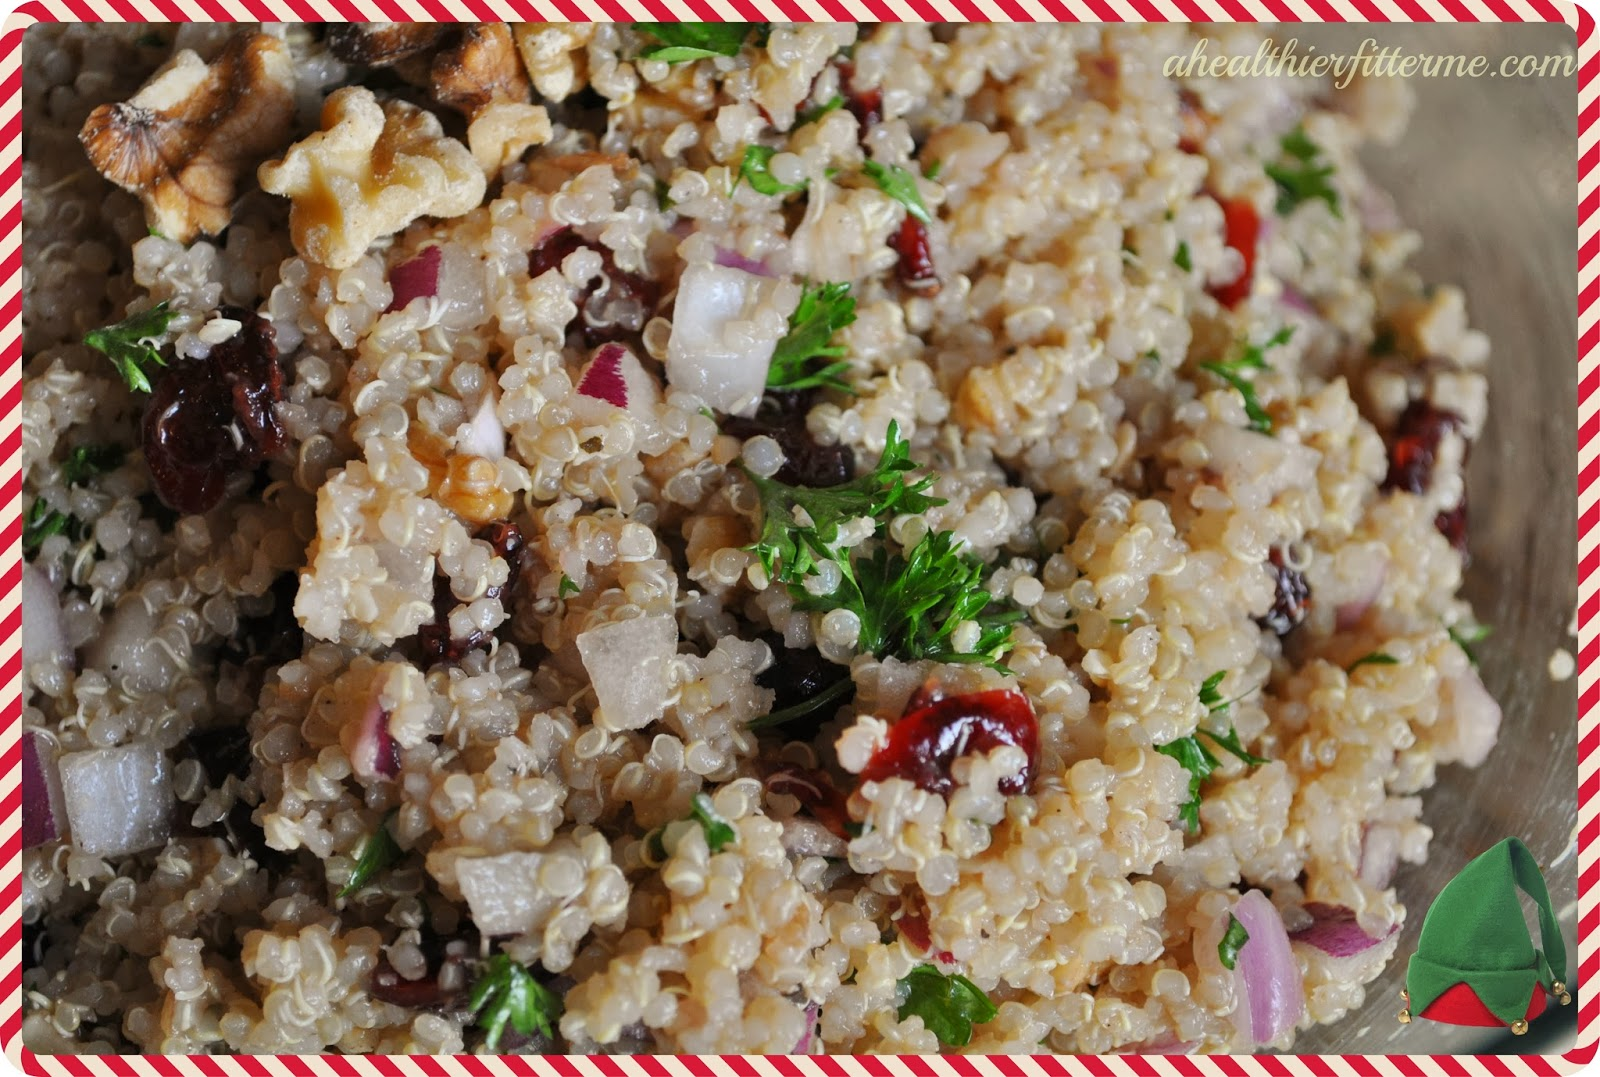 http://www.ahealthierfitterme.com/2013/12/holiday-inspired-cranberry-walnut.html